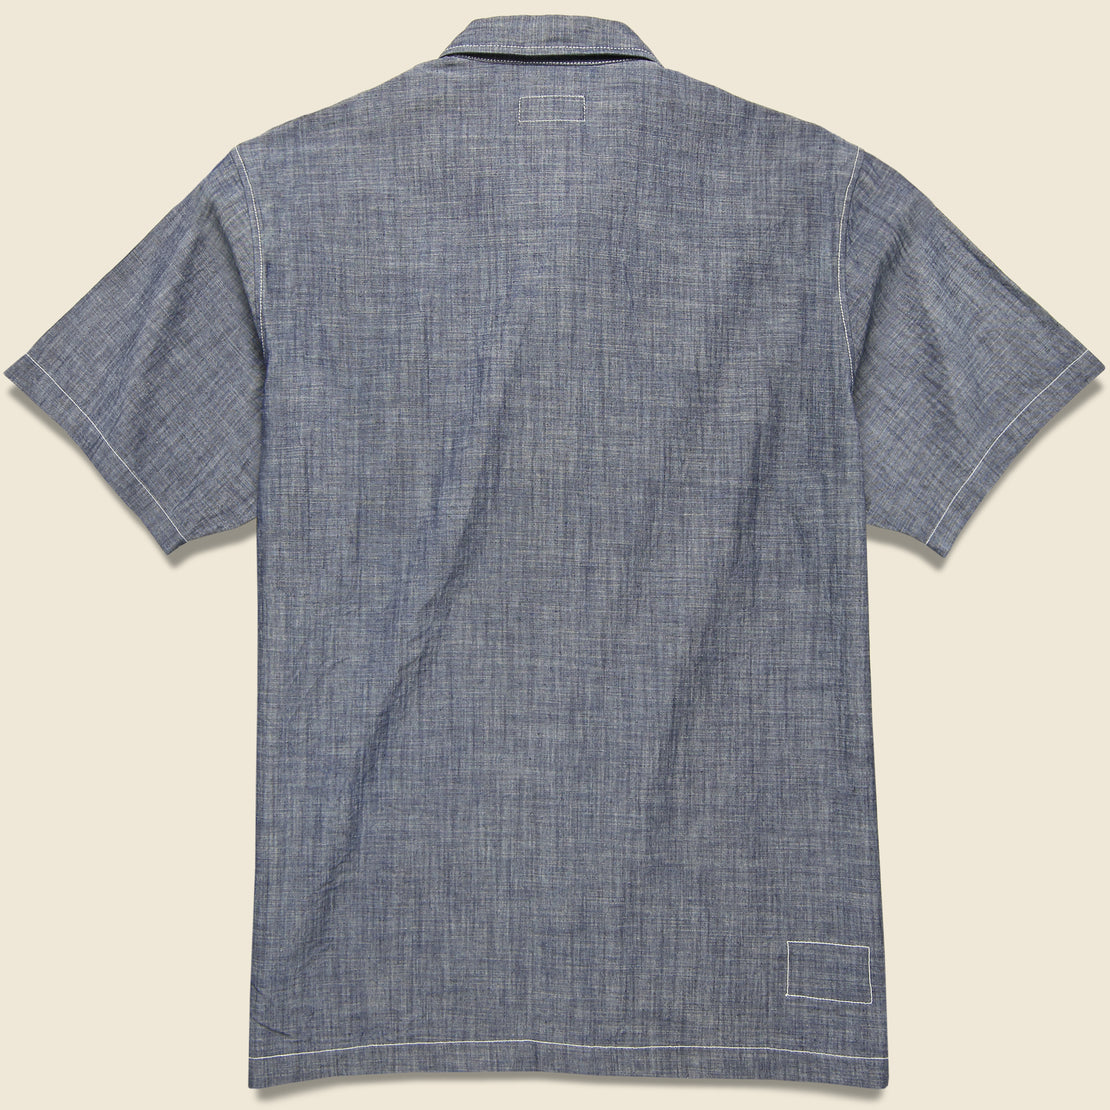 The Summer Overshirt - Indigo Chambray